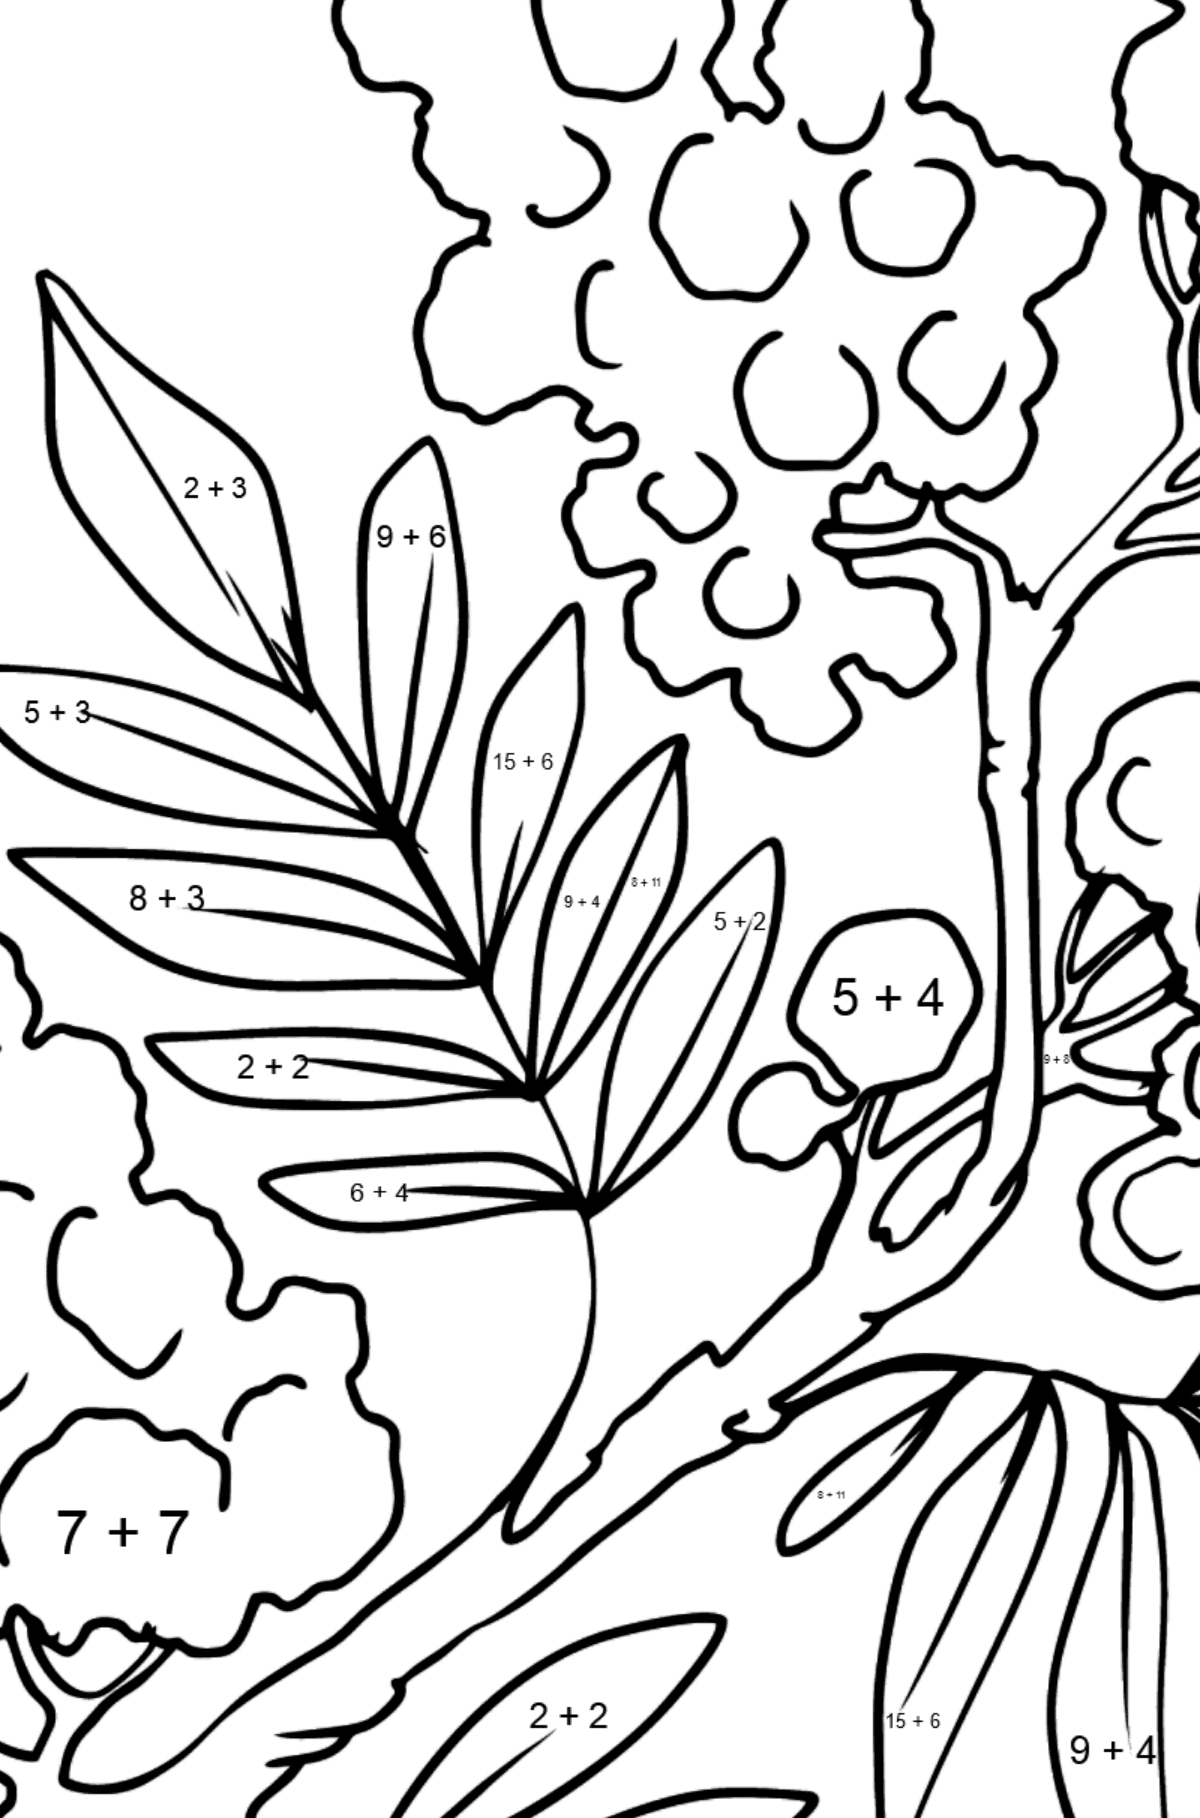 Flower Coloring Page - Mimosa - Math Coloring - Addition for Kids